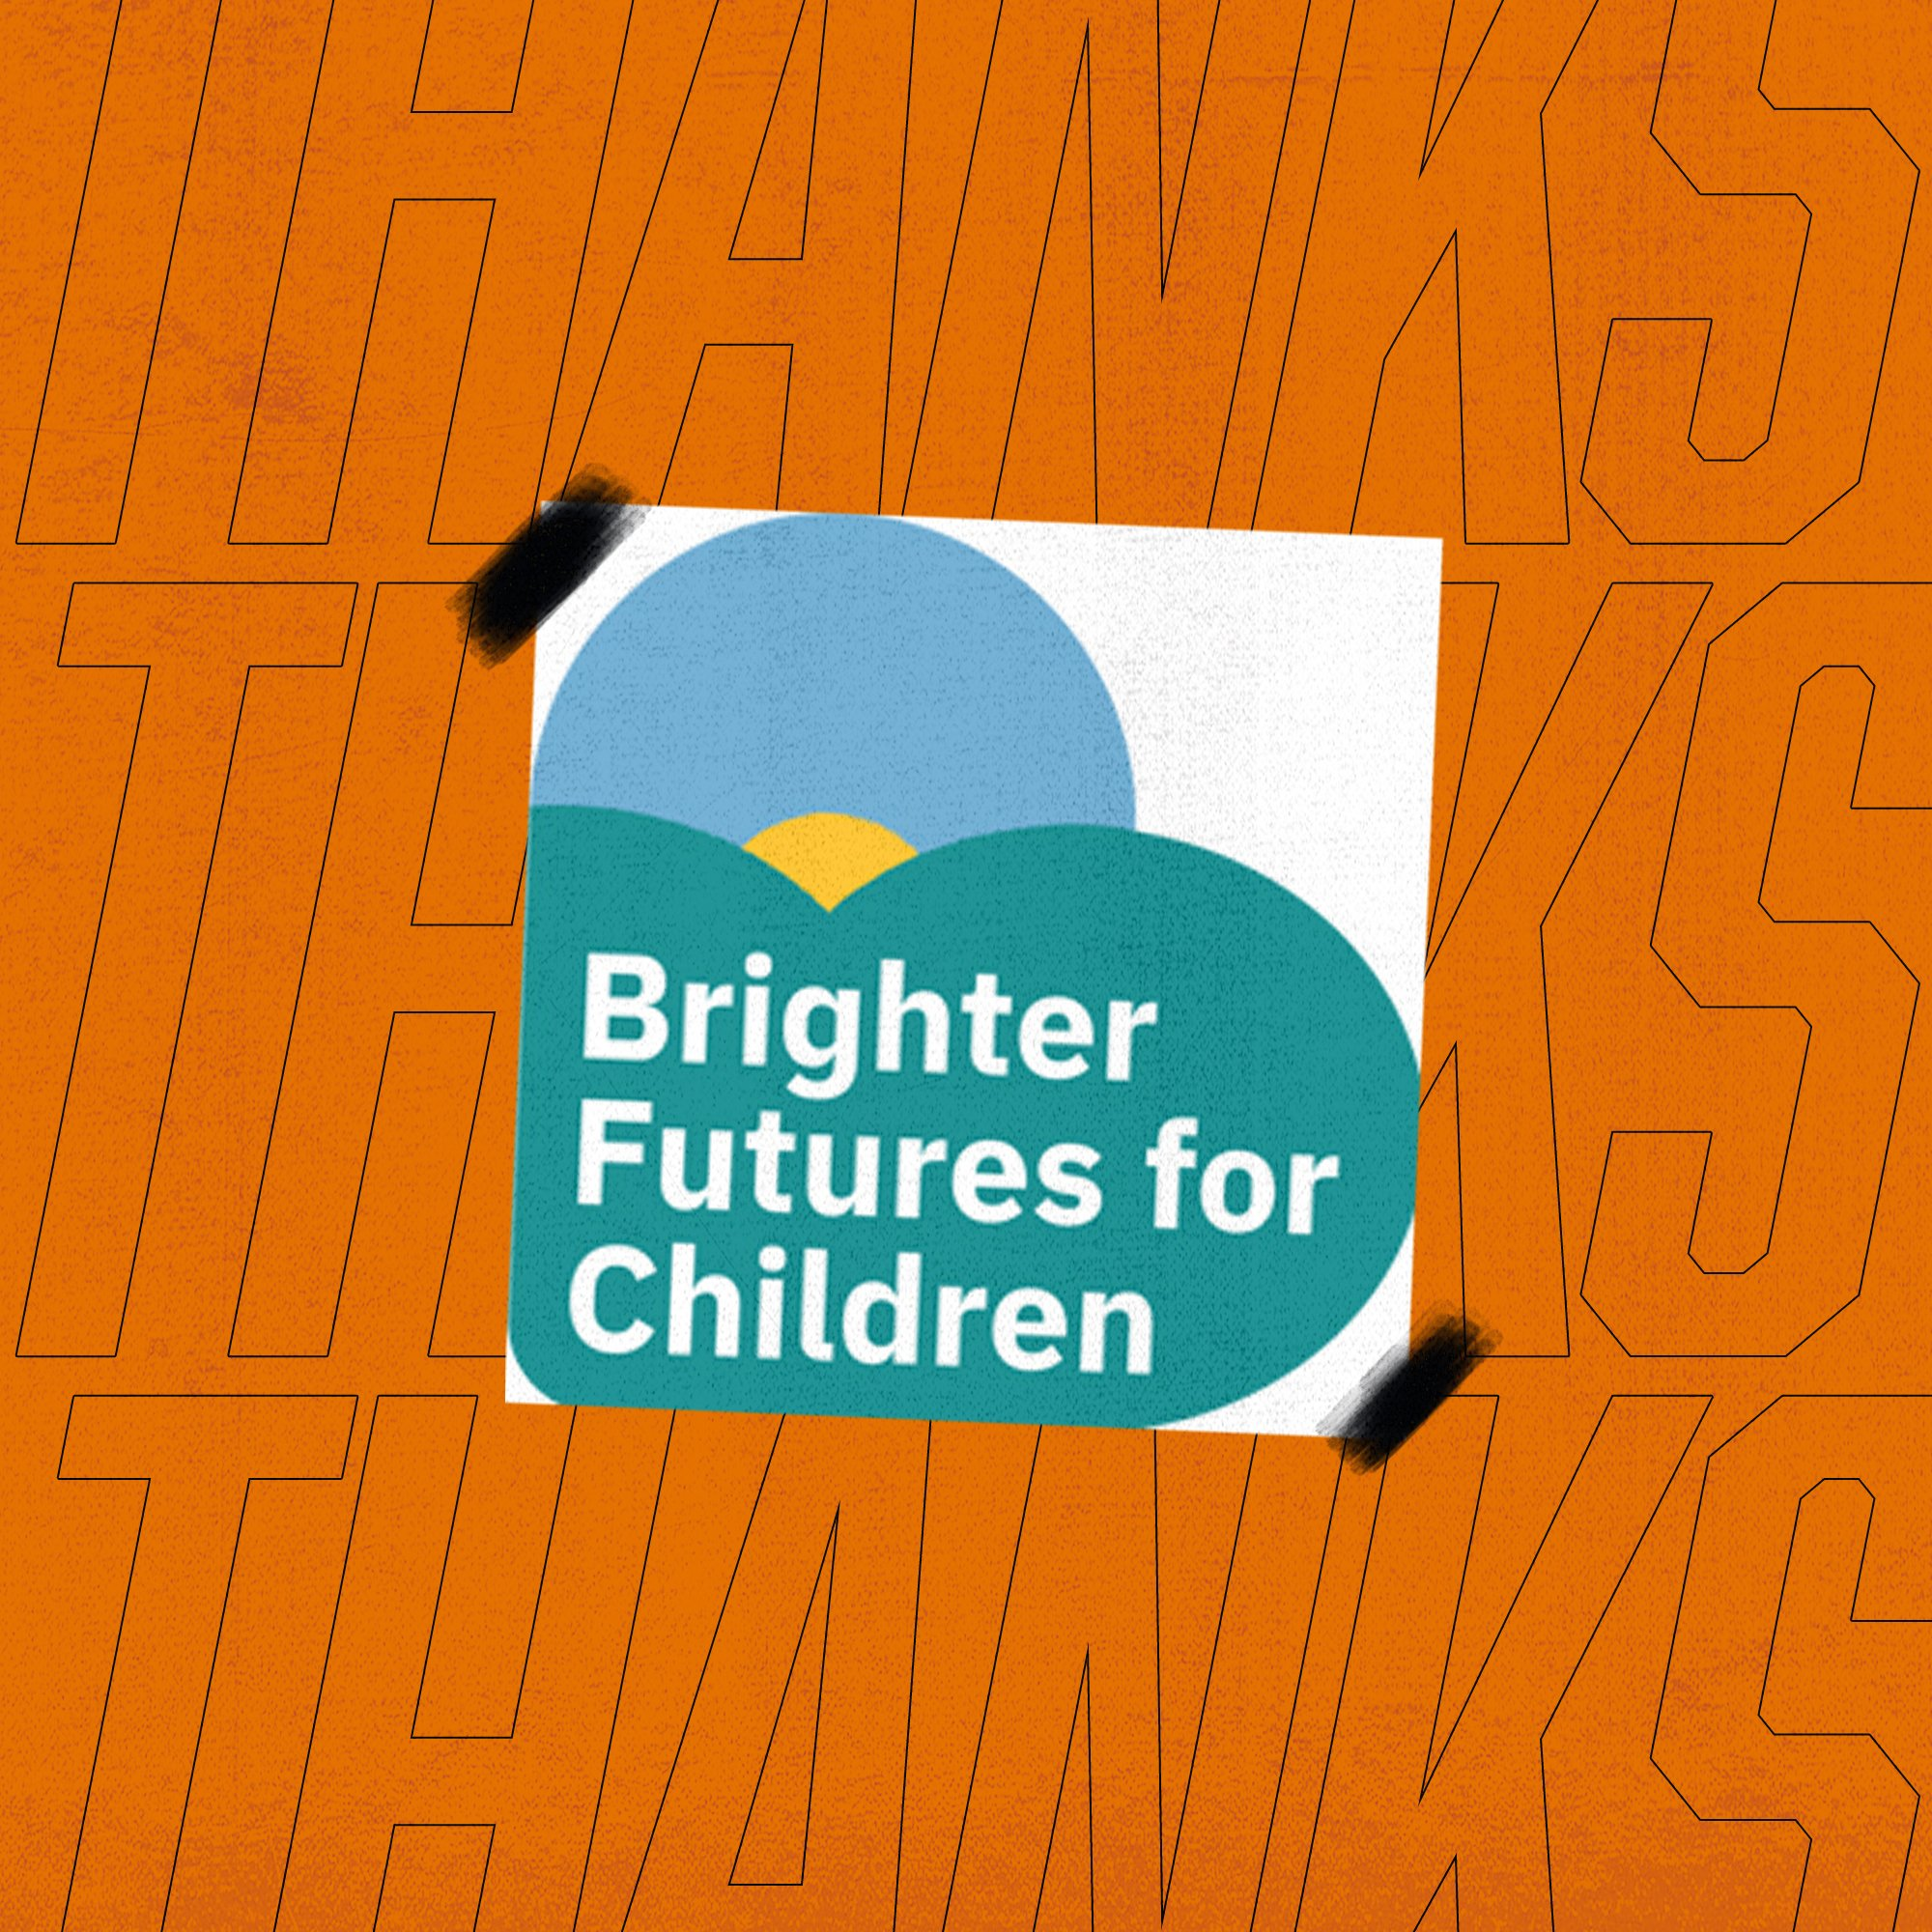 Thank You Brighter Futures for Children